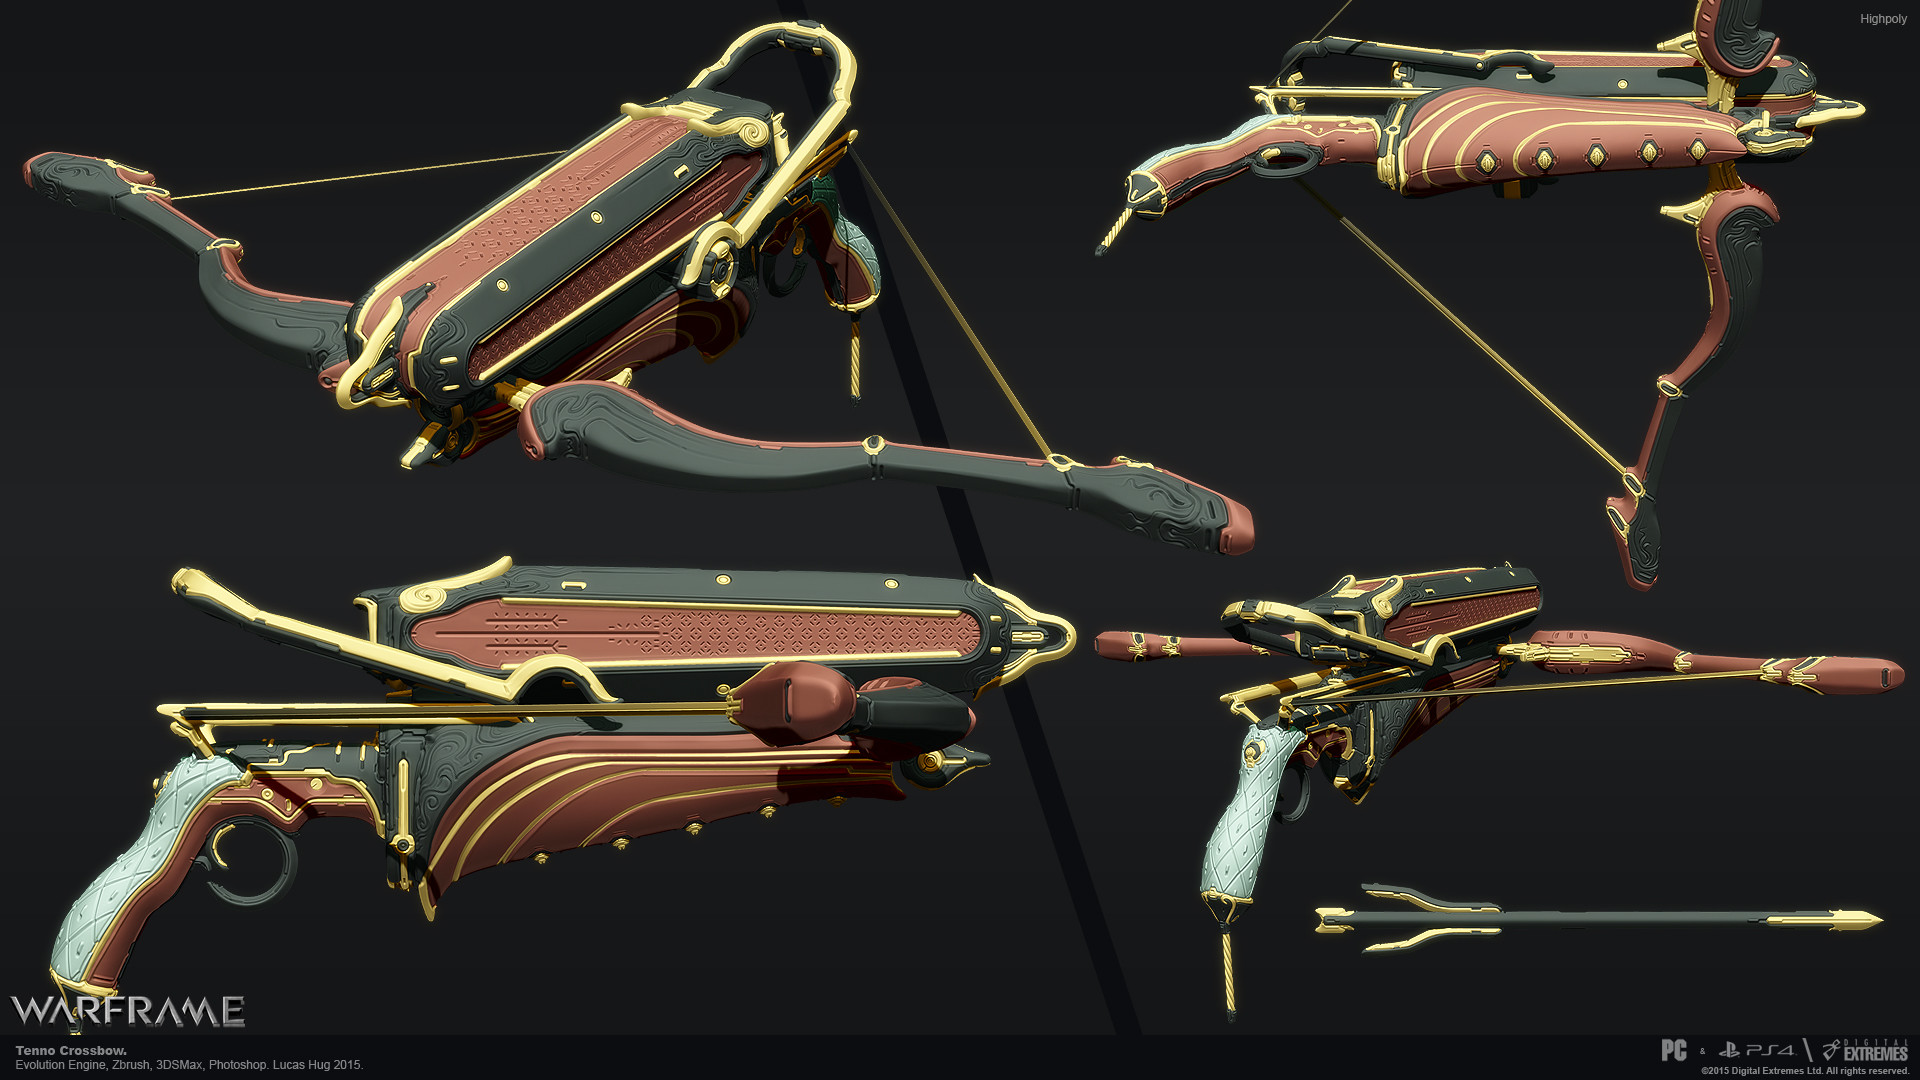 Lucas hug tennocycrossbow 001high